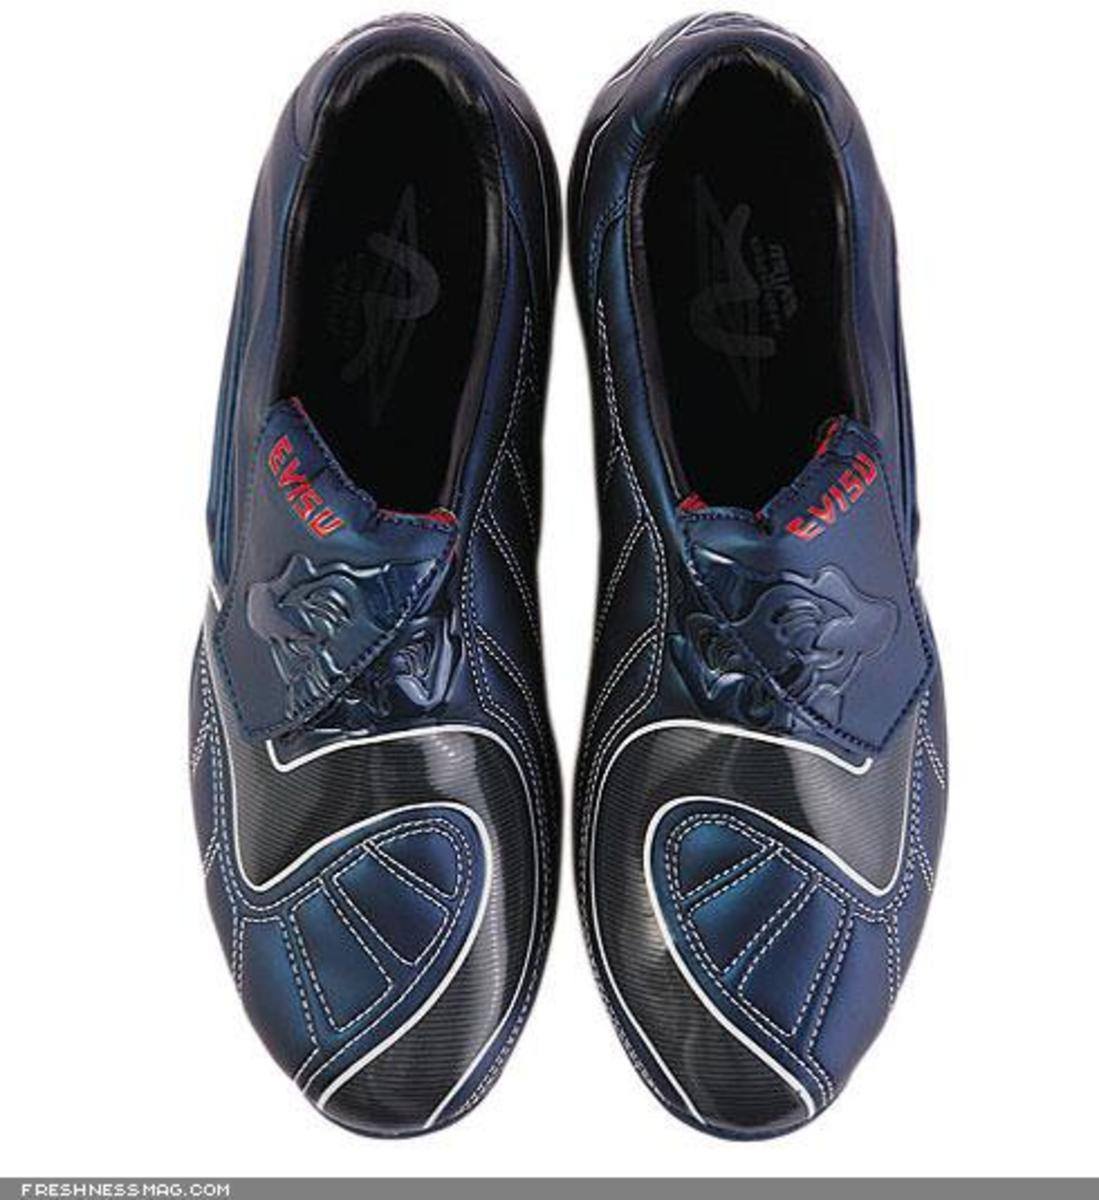 Evisu x Umbro - Soccer Shoes - 4